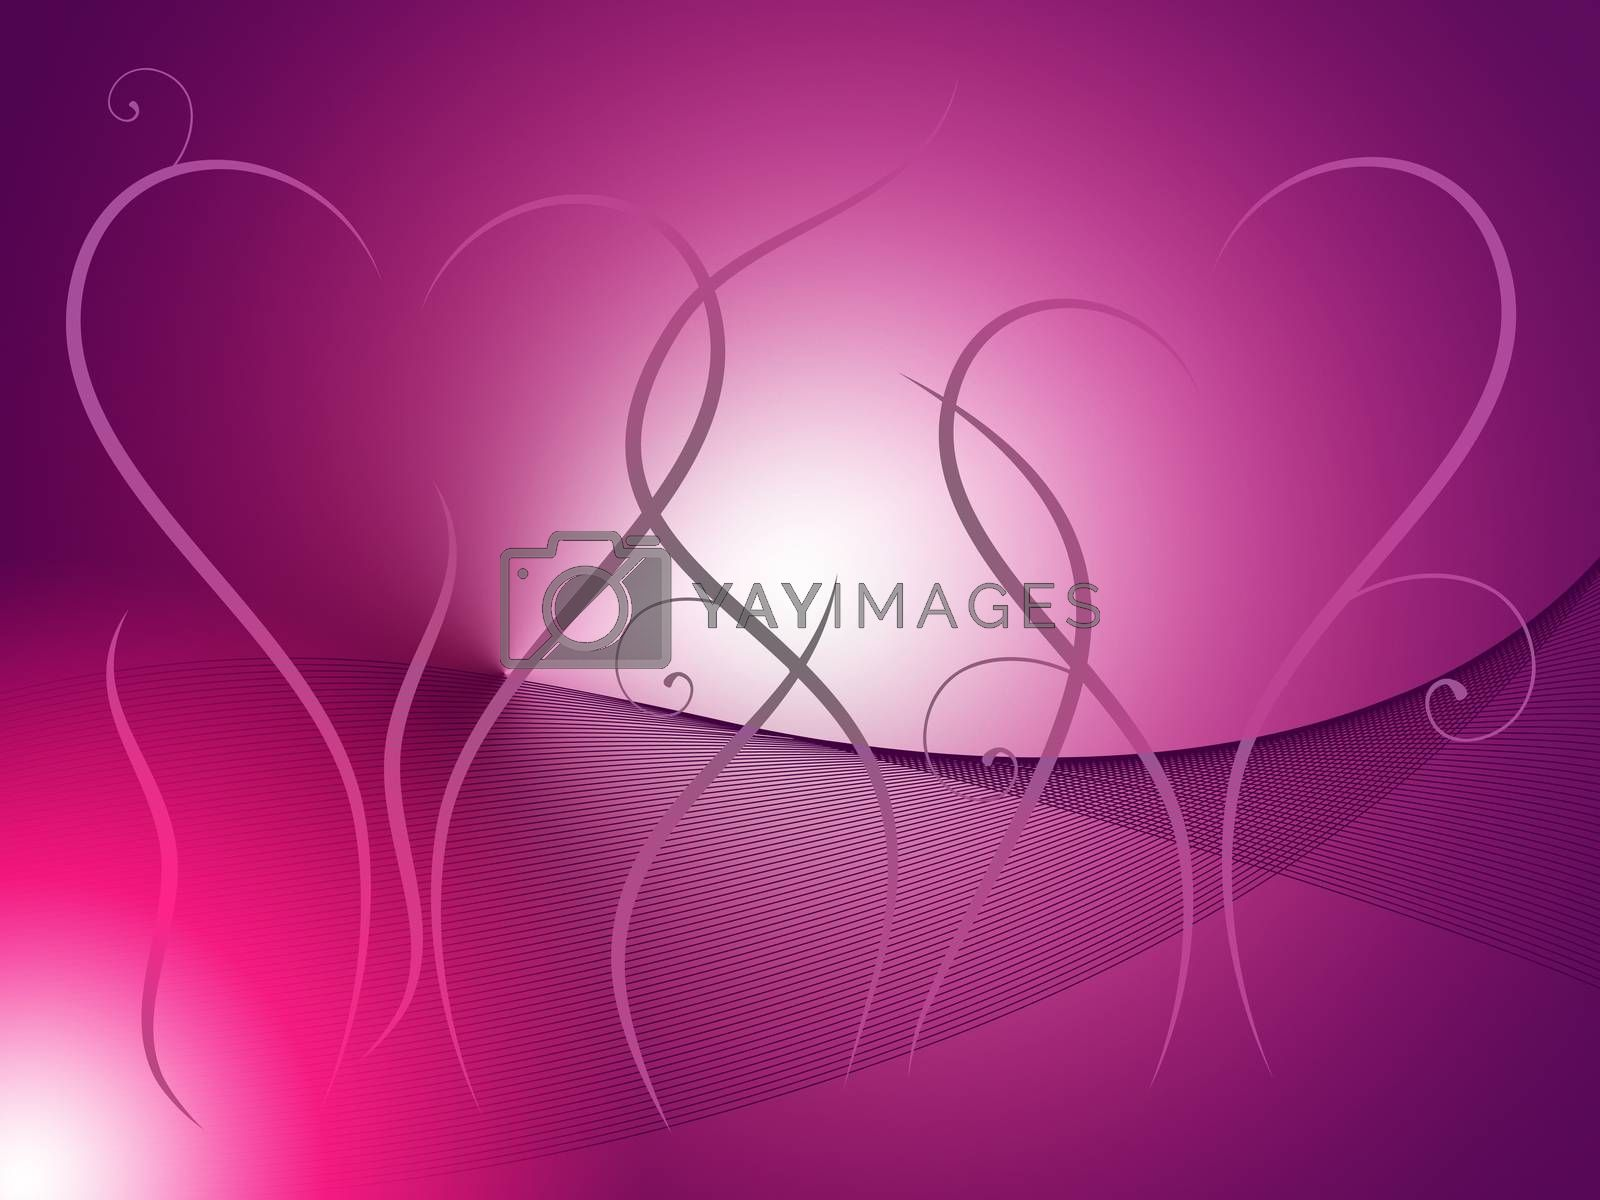 Grass Heart Background Showing Outdoor Wedding Or Romance